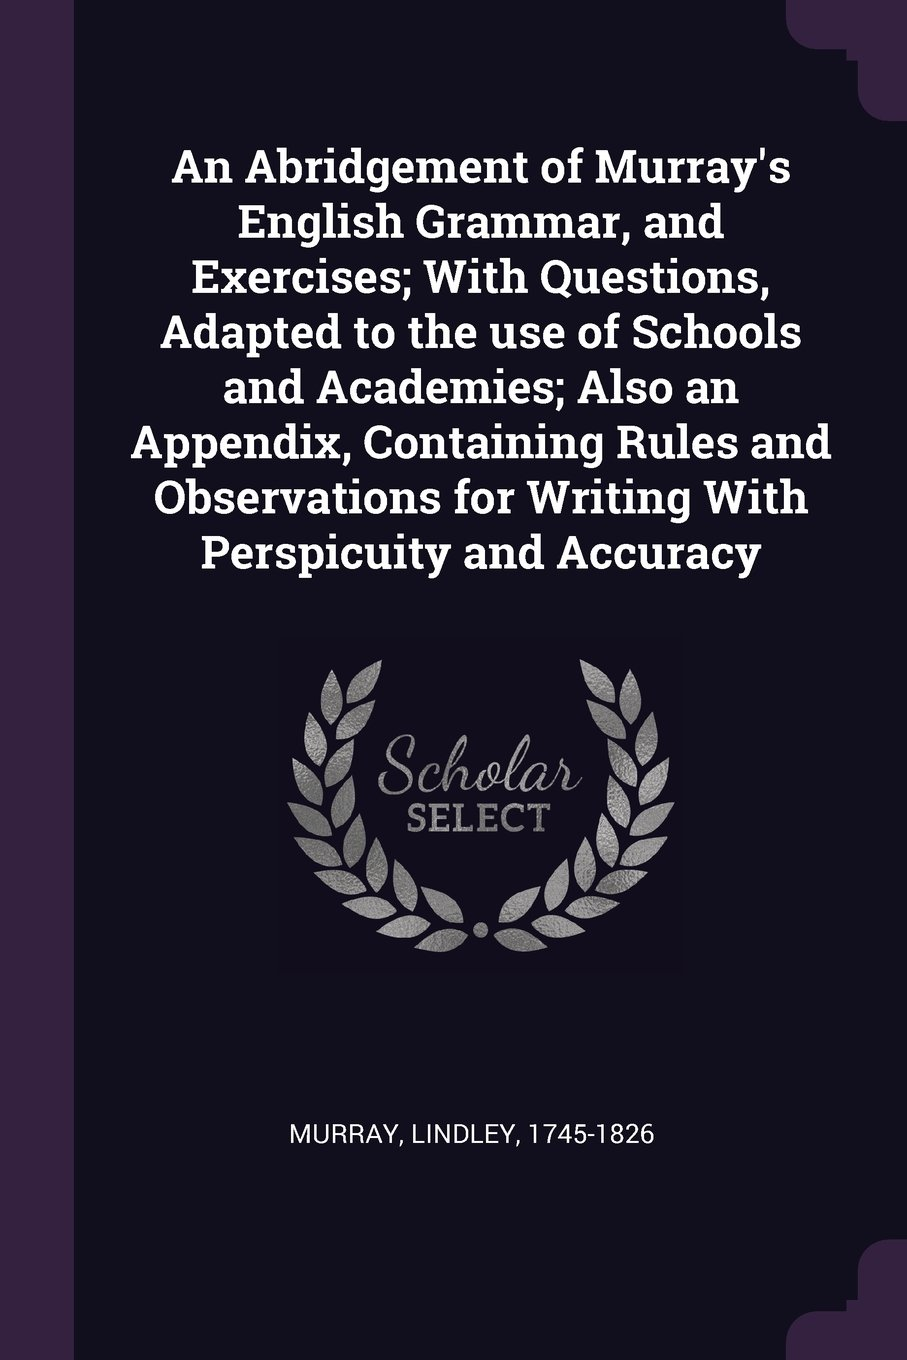 An Abridgement of Murray's English Grammar, and Exercises; With Questions, Adapted to the Use of Schools and Academies; Also an Appendix, Containing ... for Writing with Perspicuity and Accuracy PDF Text fb2 book